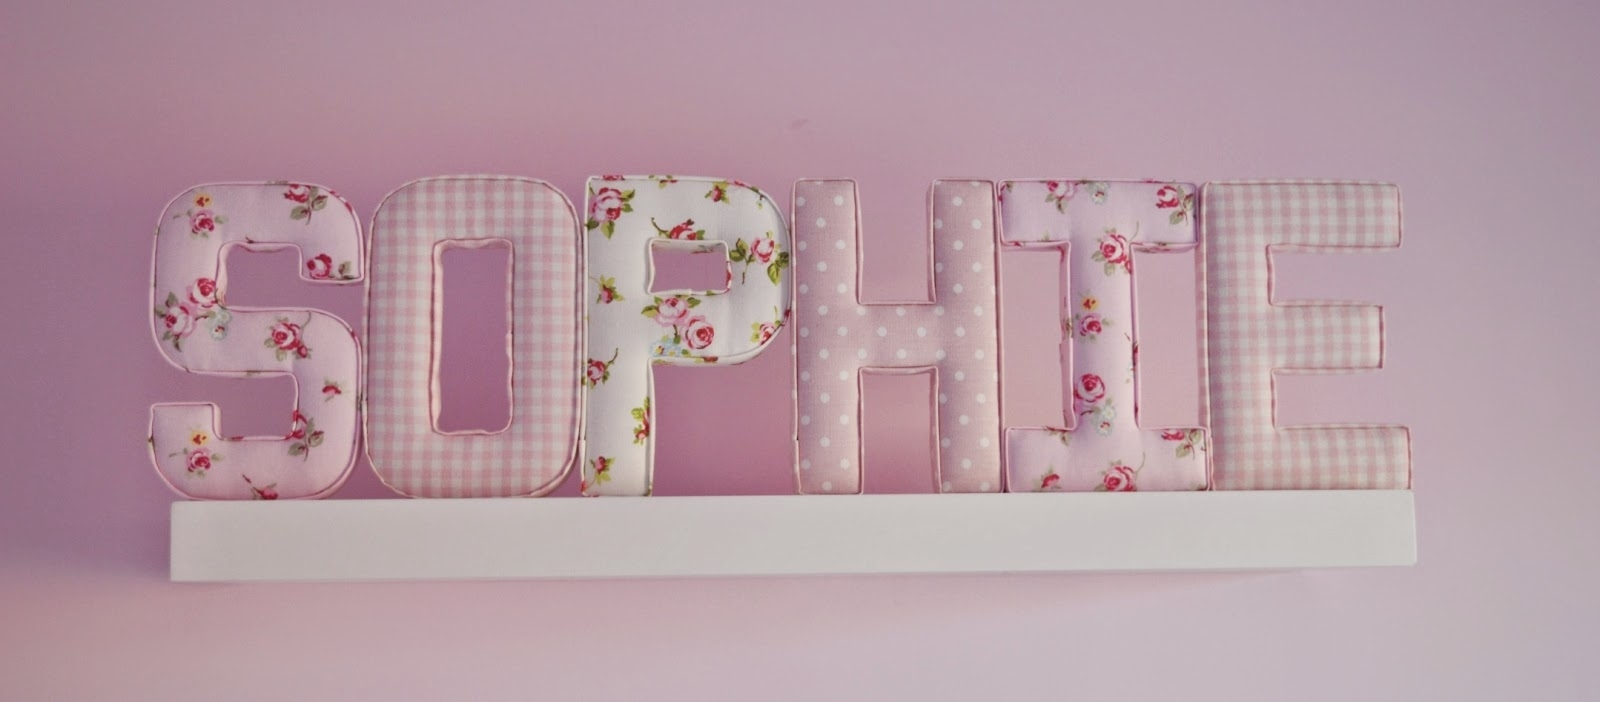 Bedroom. Cute Baby Room Name Letters Ideas As Bedroom Decorations Intended For Most Recently Released Fabric Name Wall Art (Gallery 2 of 15)